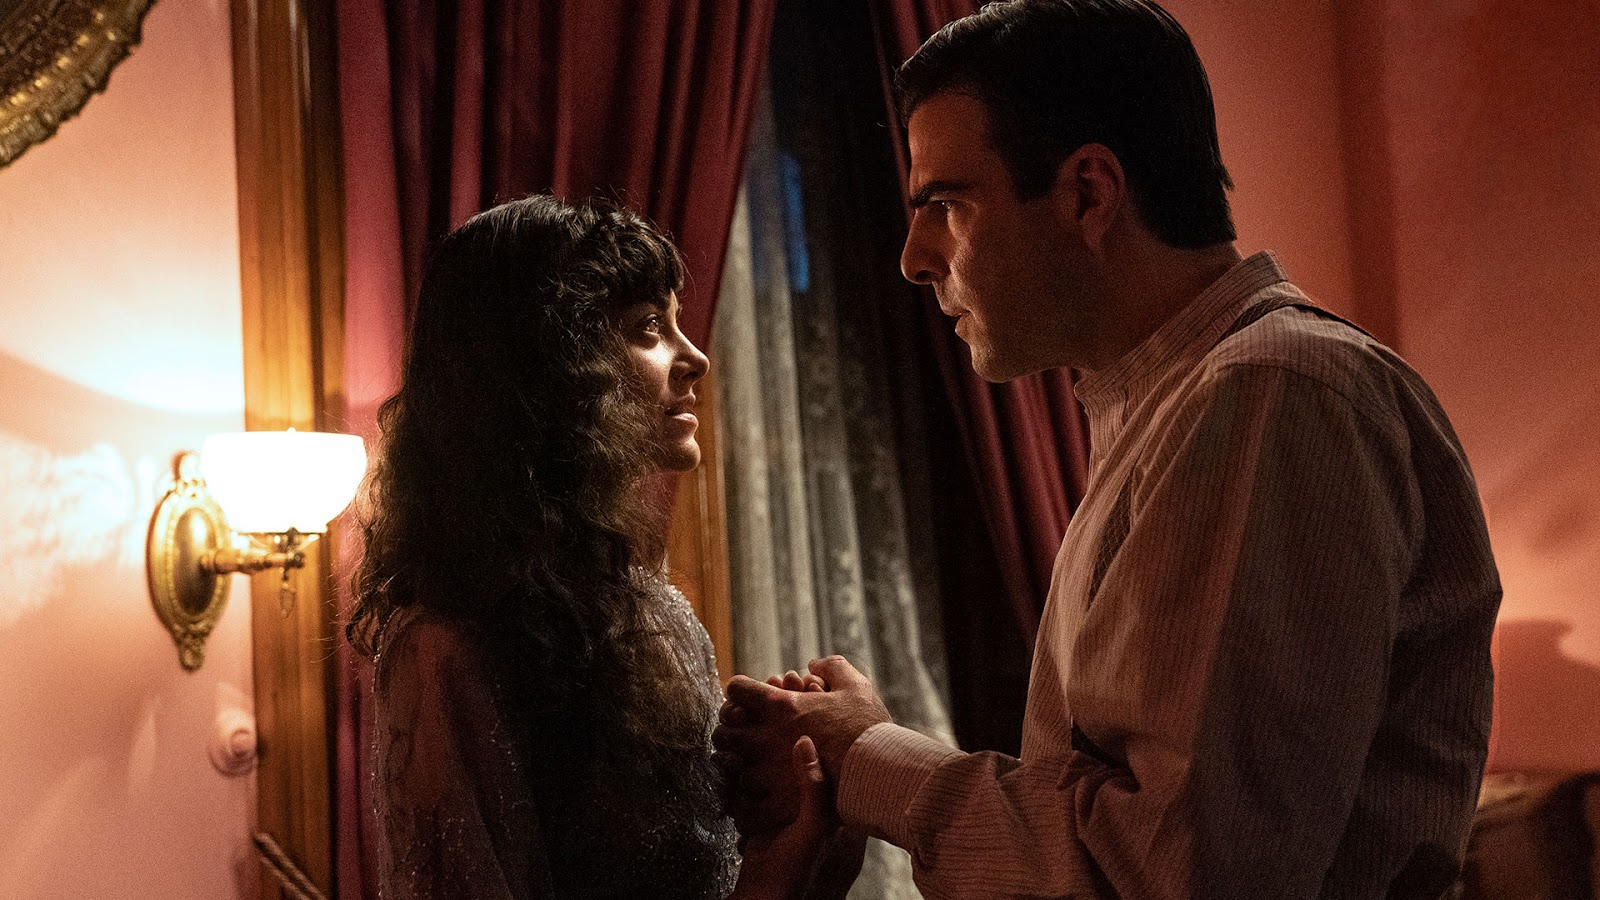 Celeste Arias and Zachary Quinto are Cassie and Charlie Manx | NOS4A2 Good Father | NOS4A2 season 2 episode 2